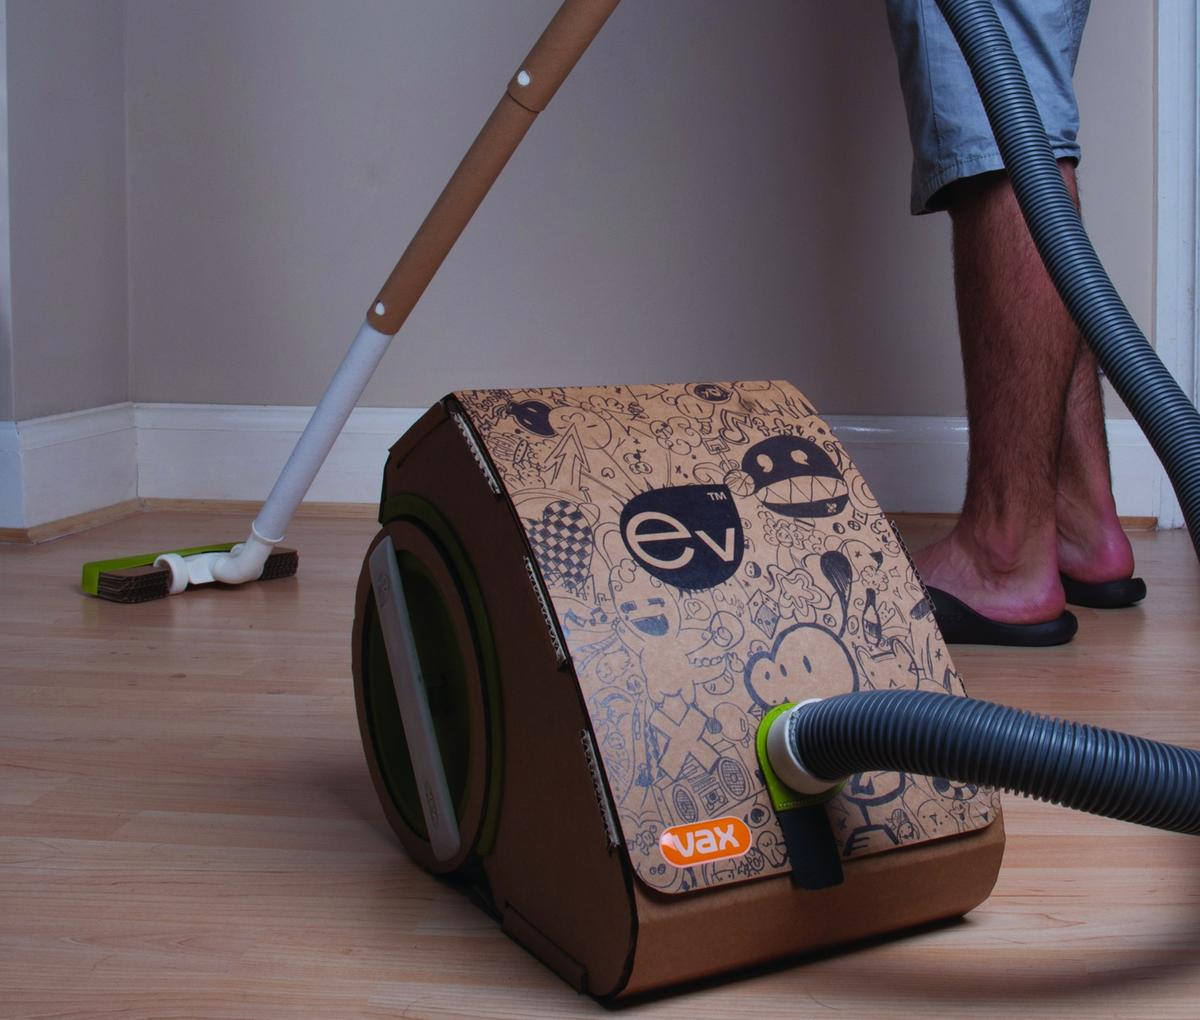 Industrial designer Jake Tyler has spent the last 12 months at the Worcestershire headquarters of Vax, developing a vacuum cleaner made from cardboard for his final year degree project